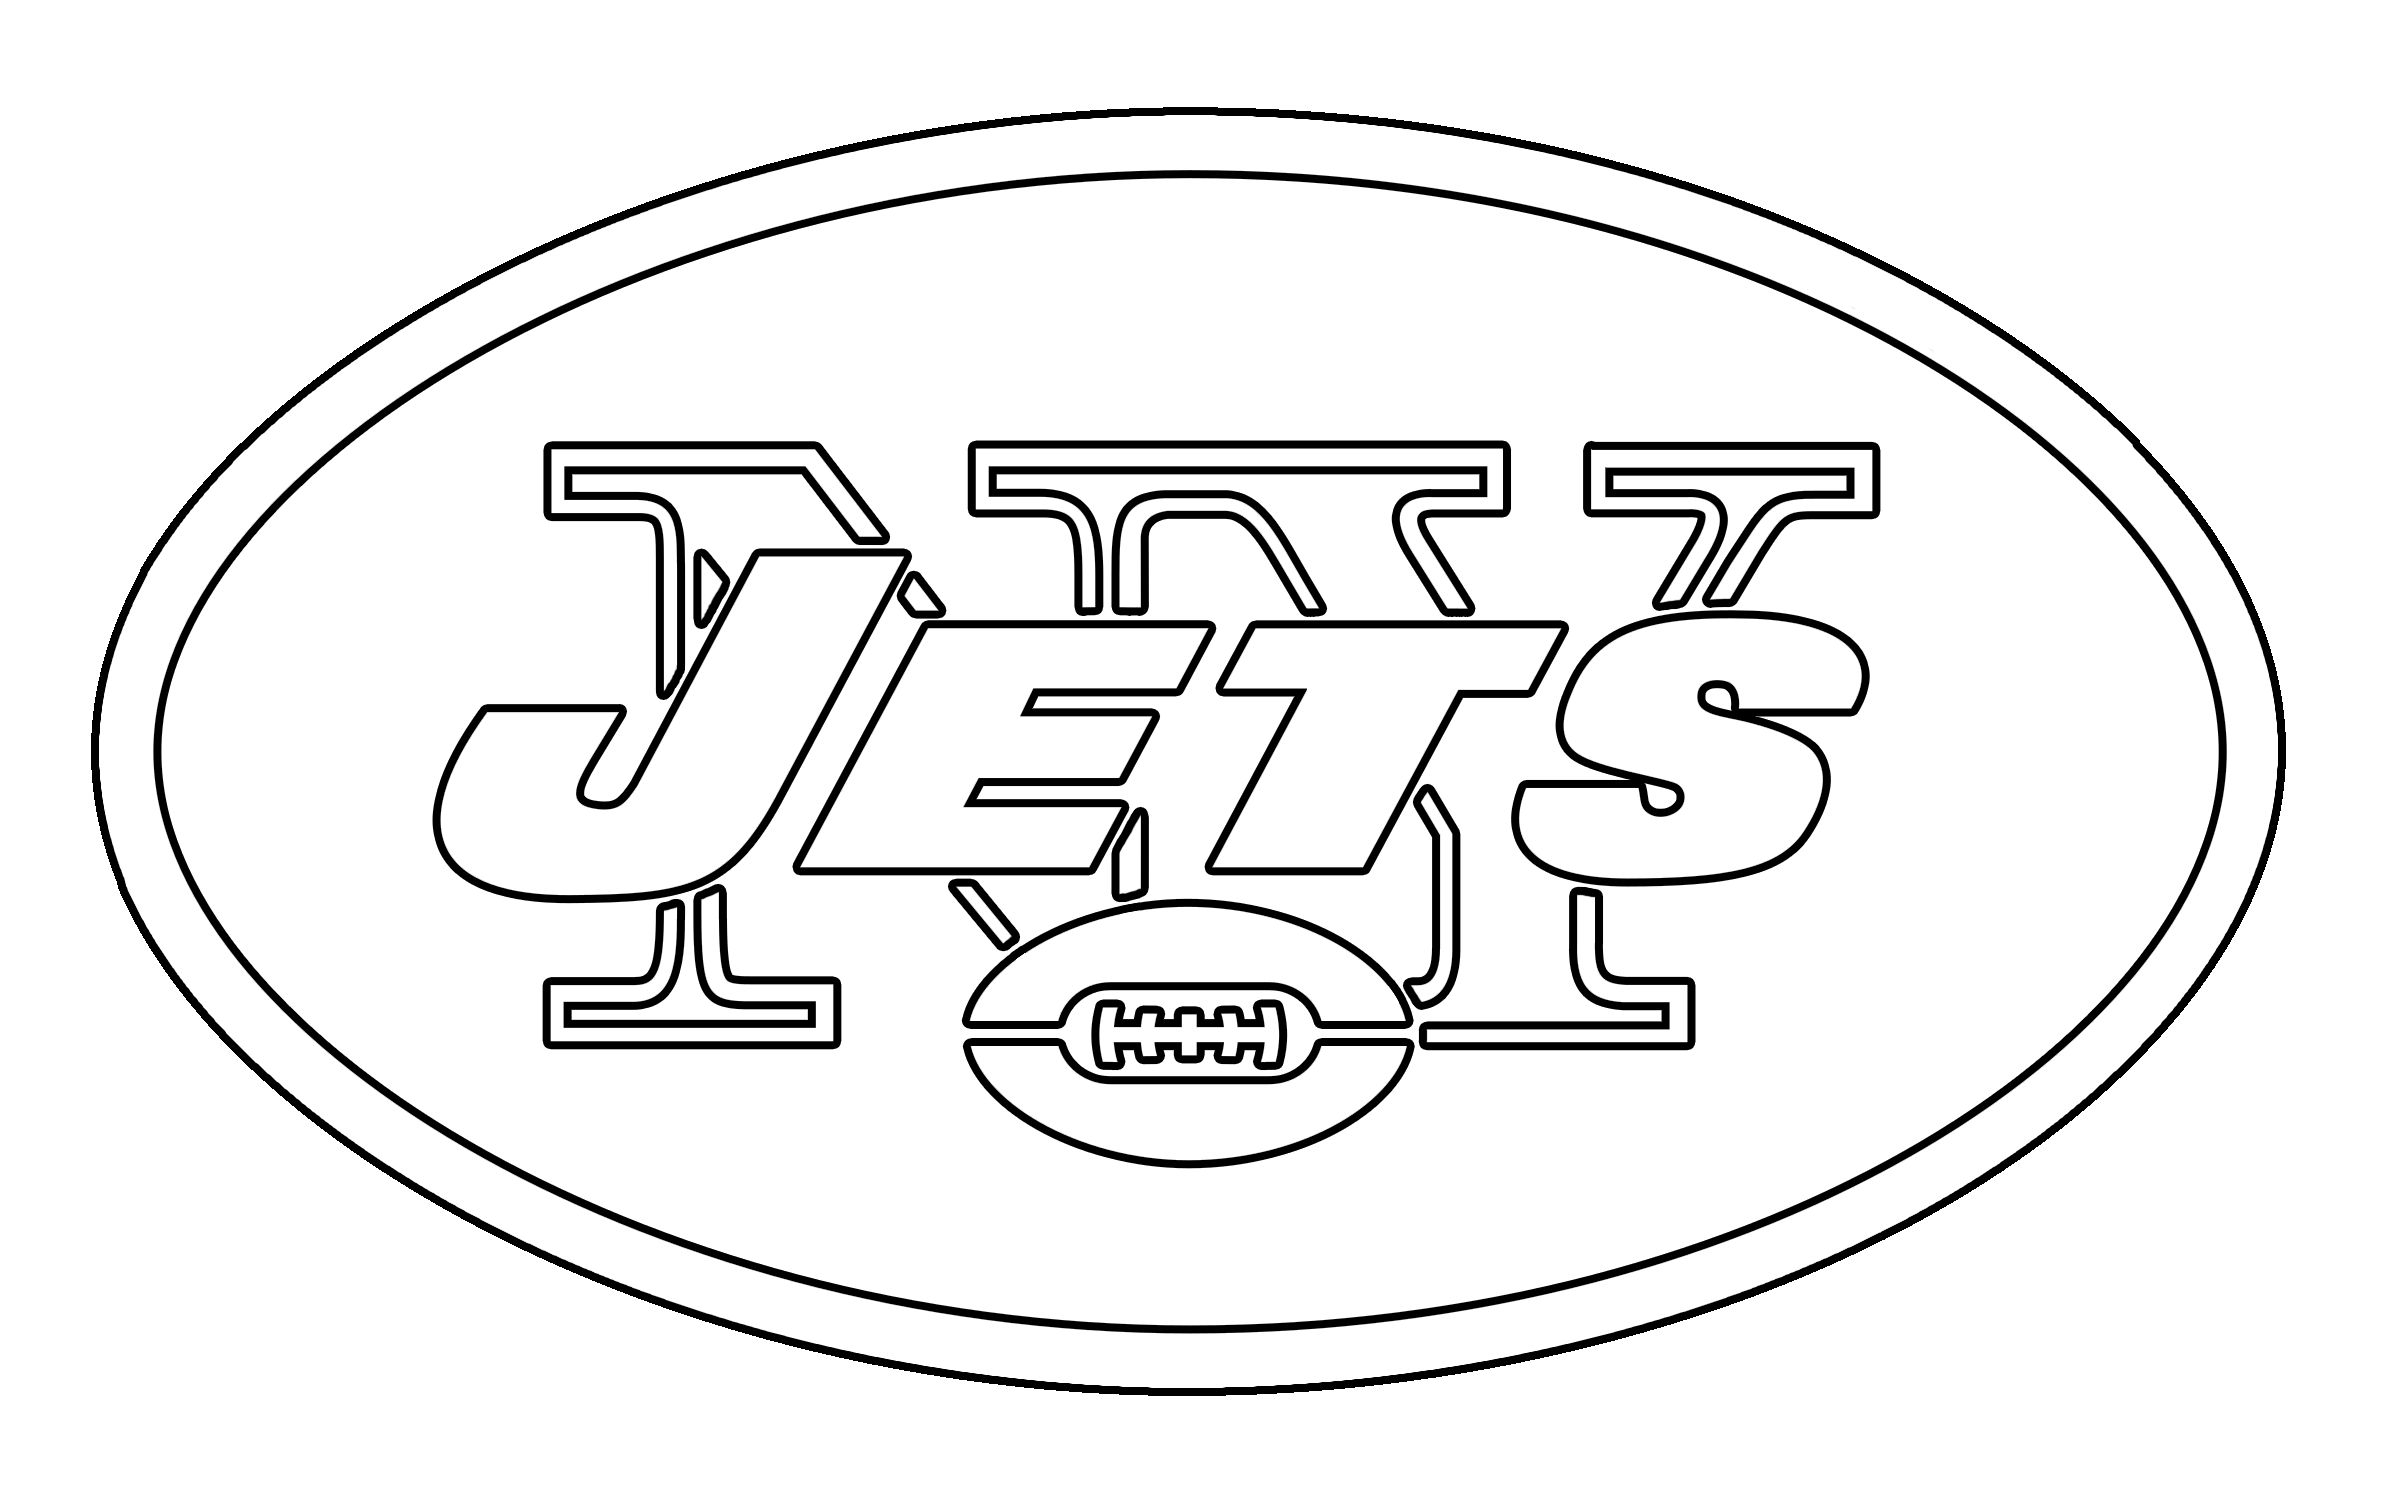 The nitro & turbo font is used for jersey lettering, player names, numbers, team logo, branding, and merchandise. New York Jets Logo PNG Transparent & SVG Vector - Freebie ...